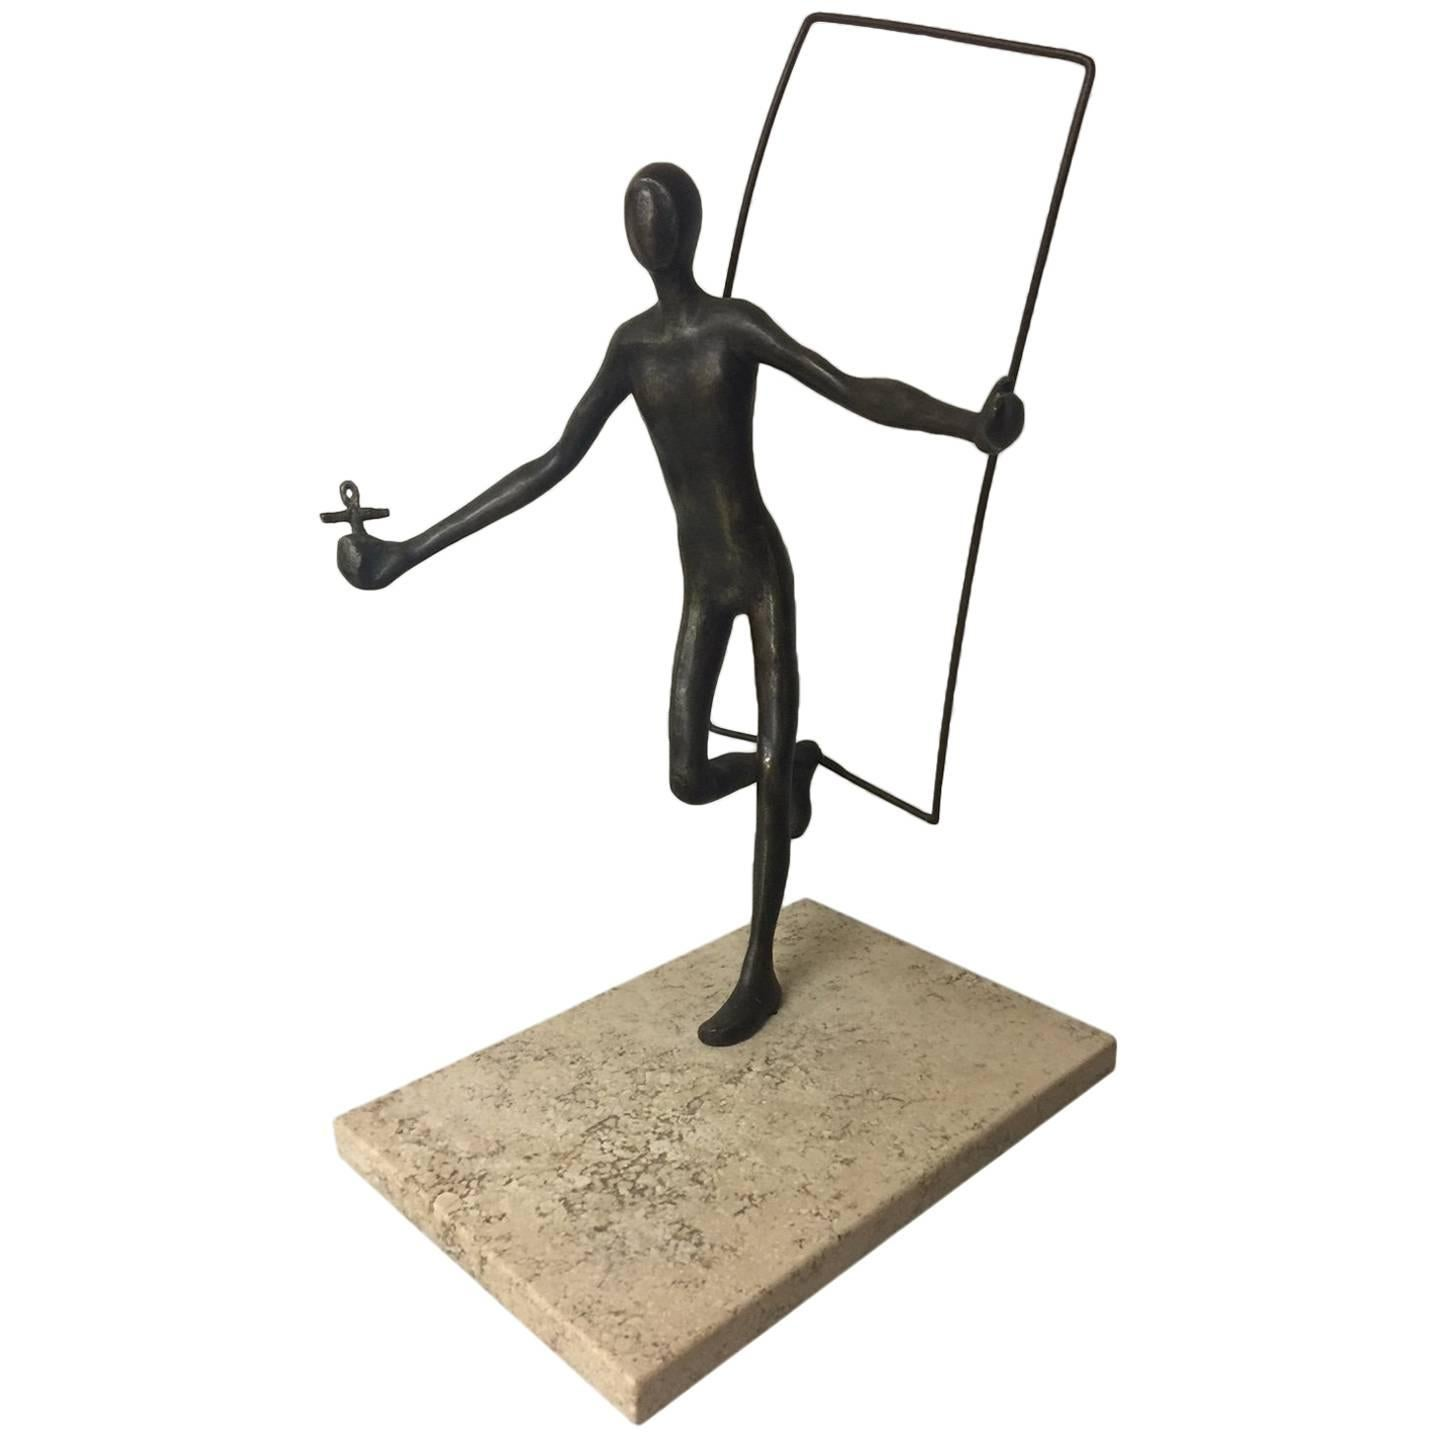 Signed Artist Proof Figurative Bronze on Travertine Base by Victor Salmones